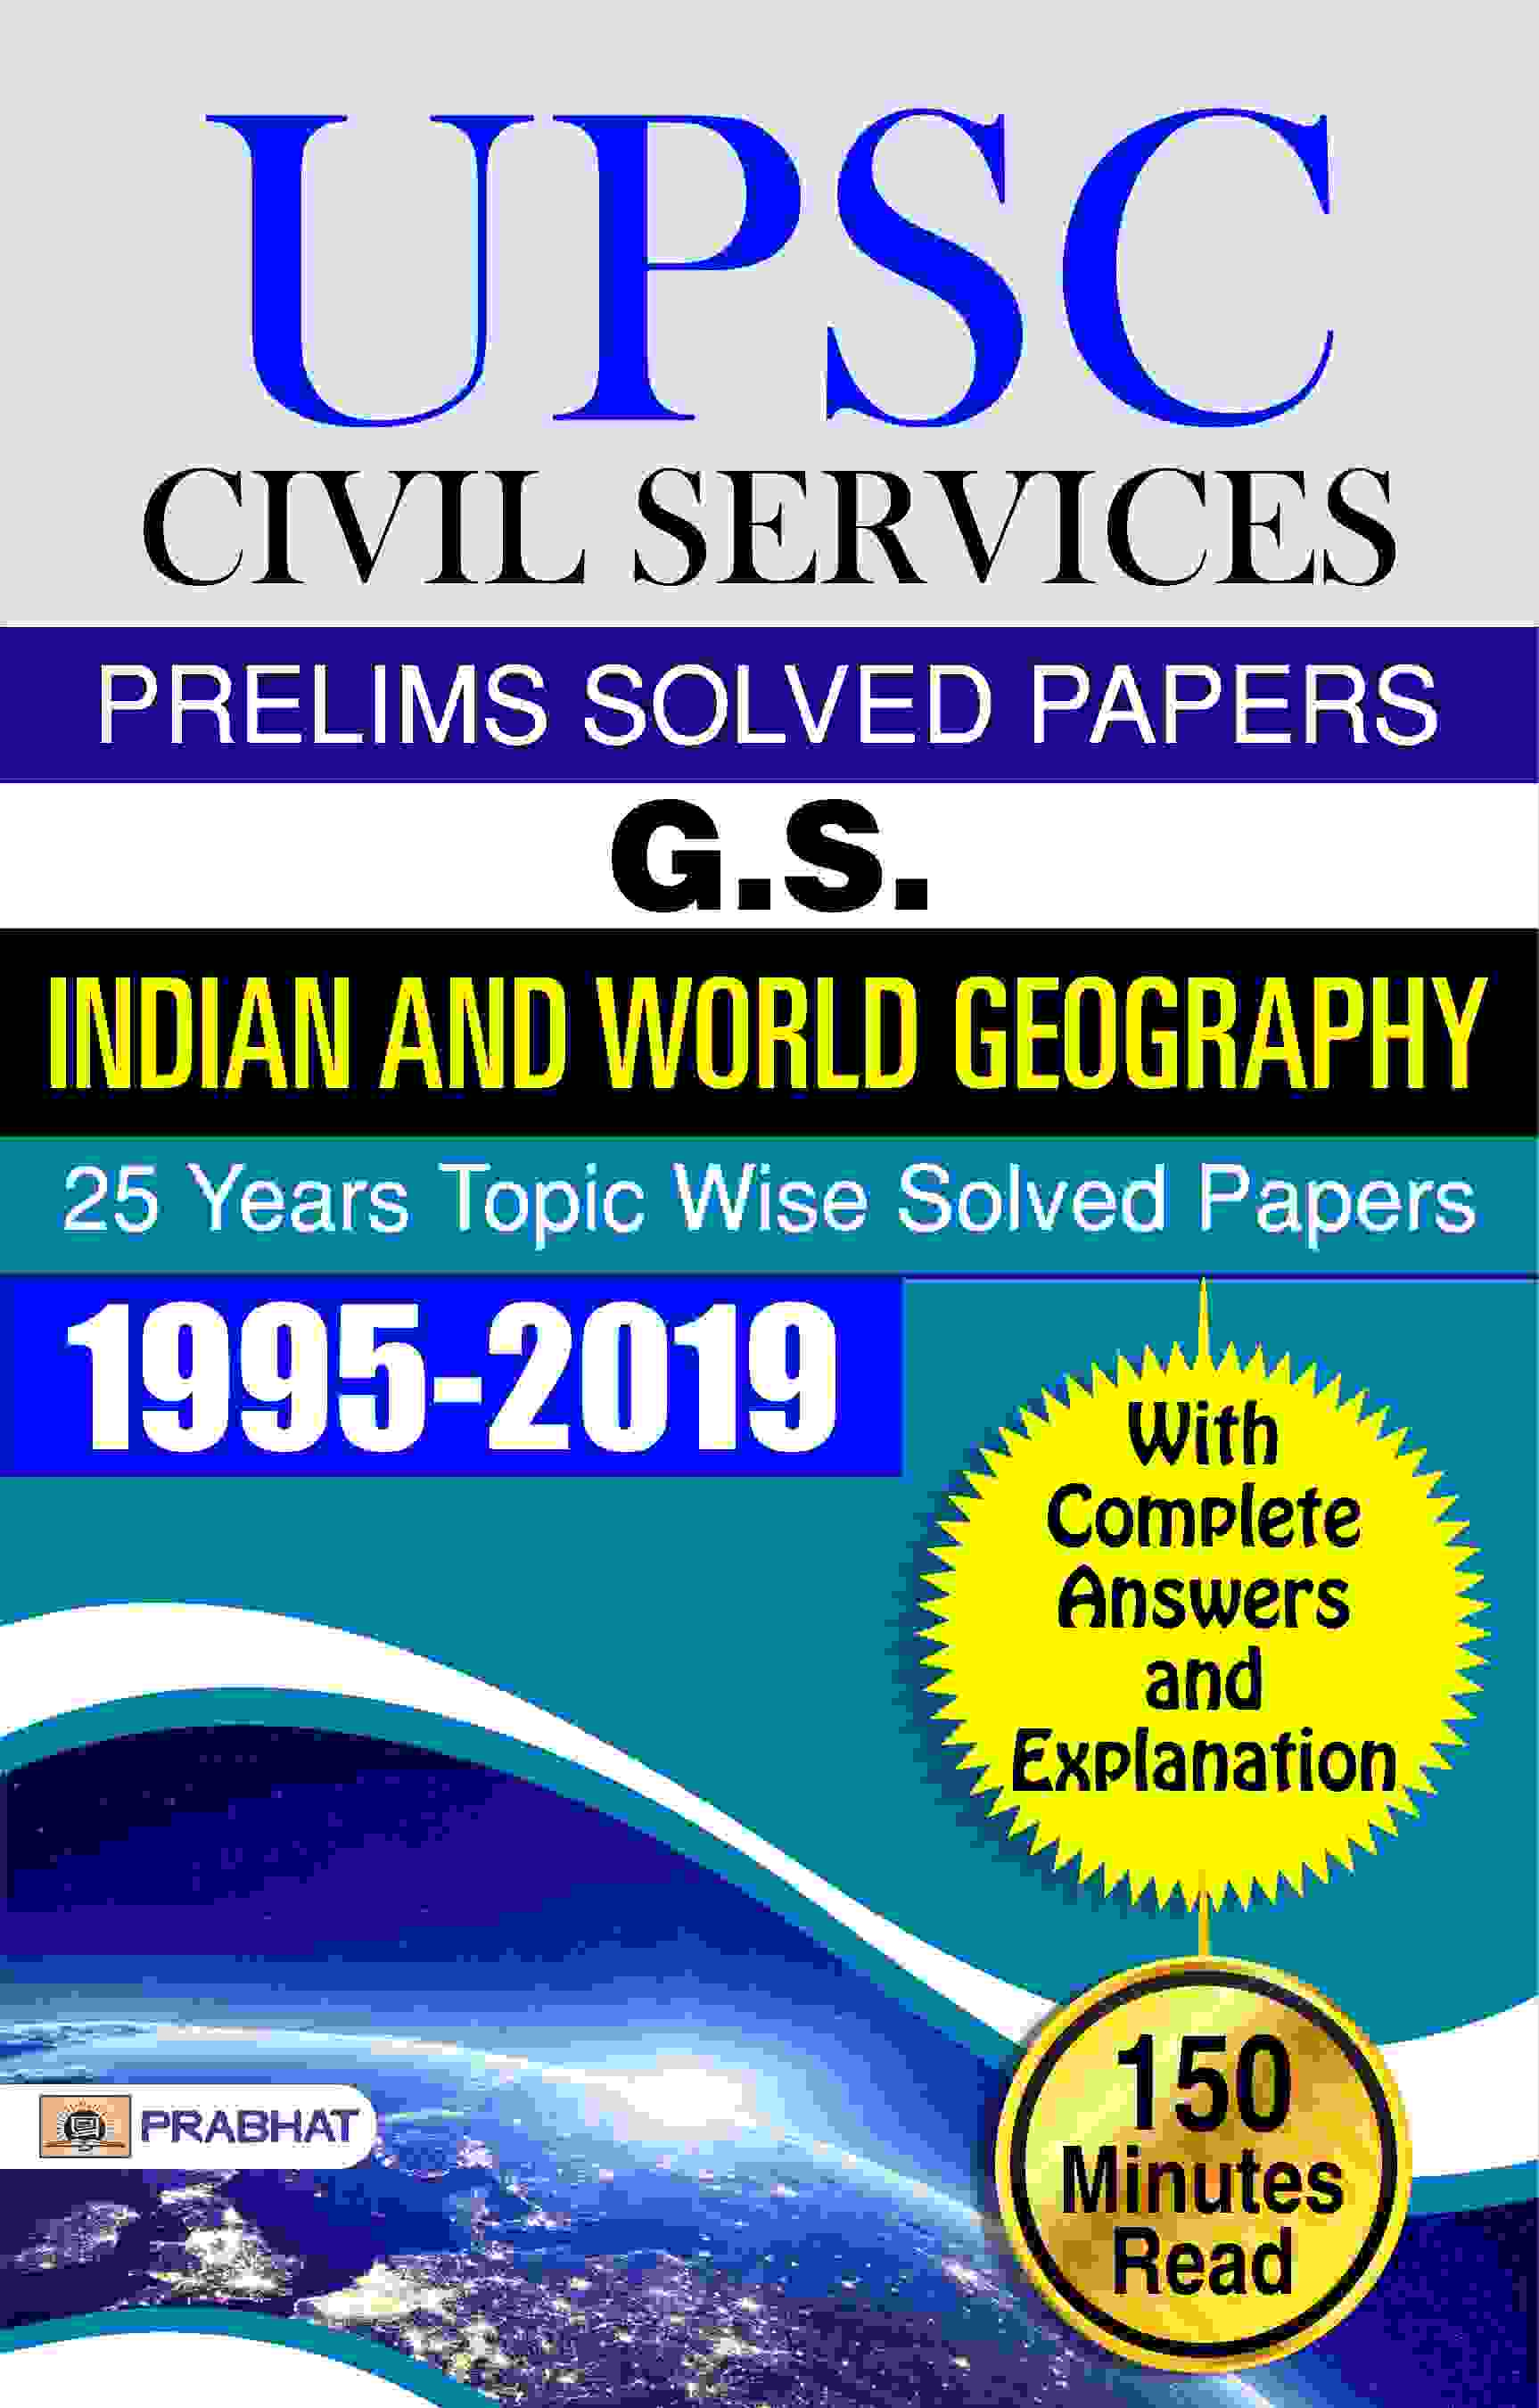 UPSC Civil Services Prelims Solved Papers G.S. Indian and World Geogra...